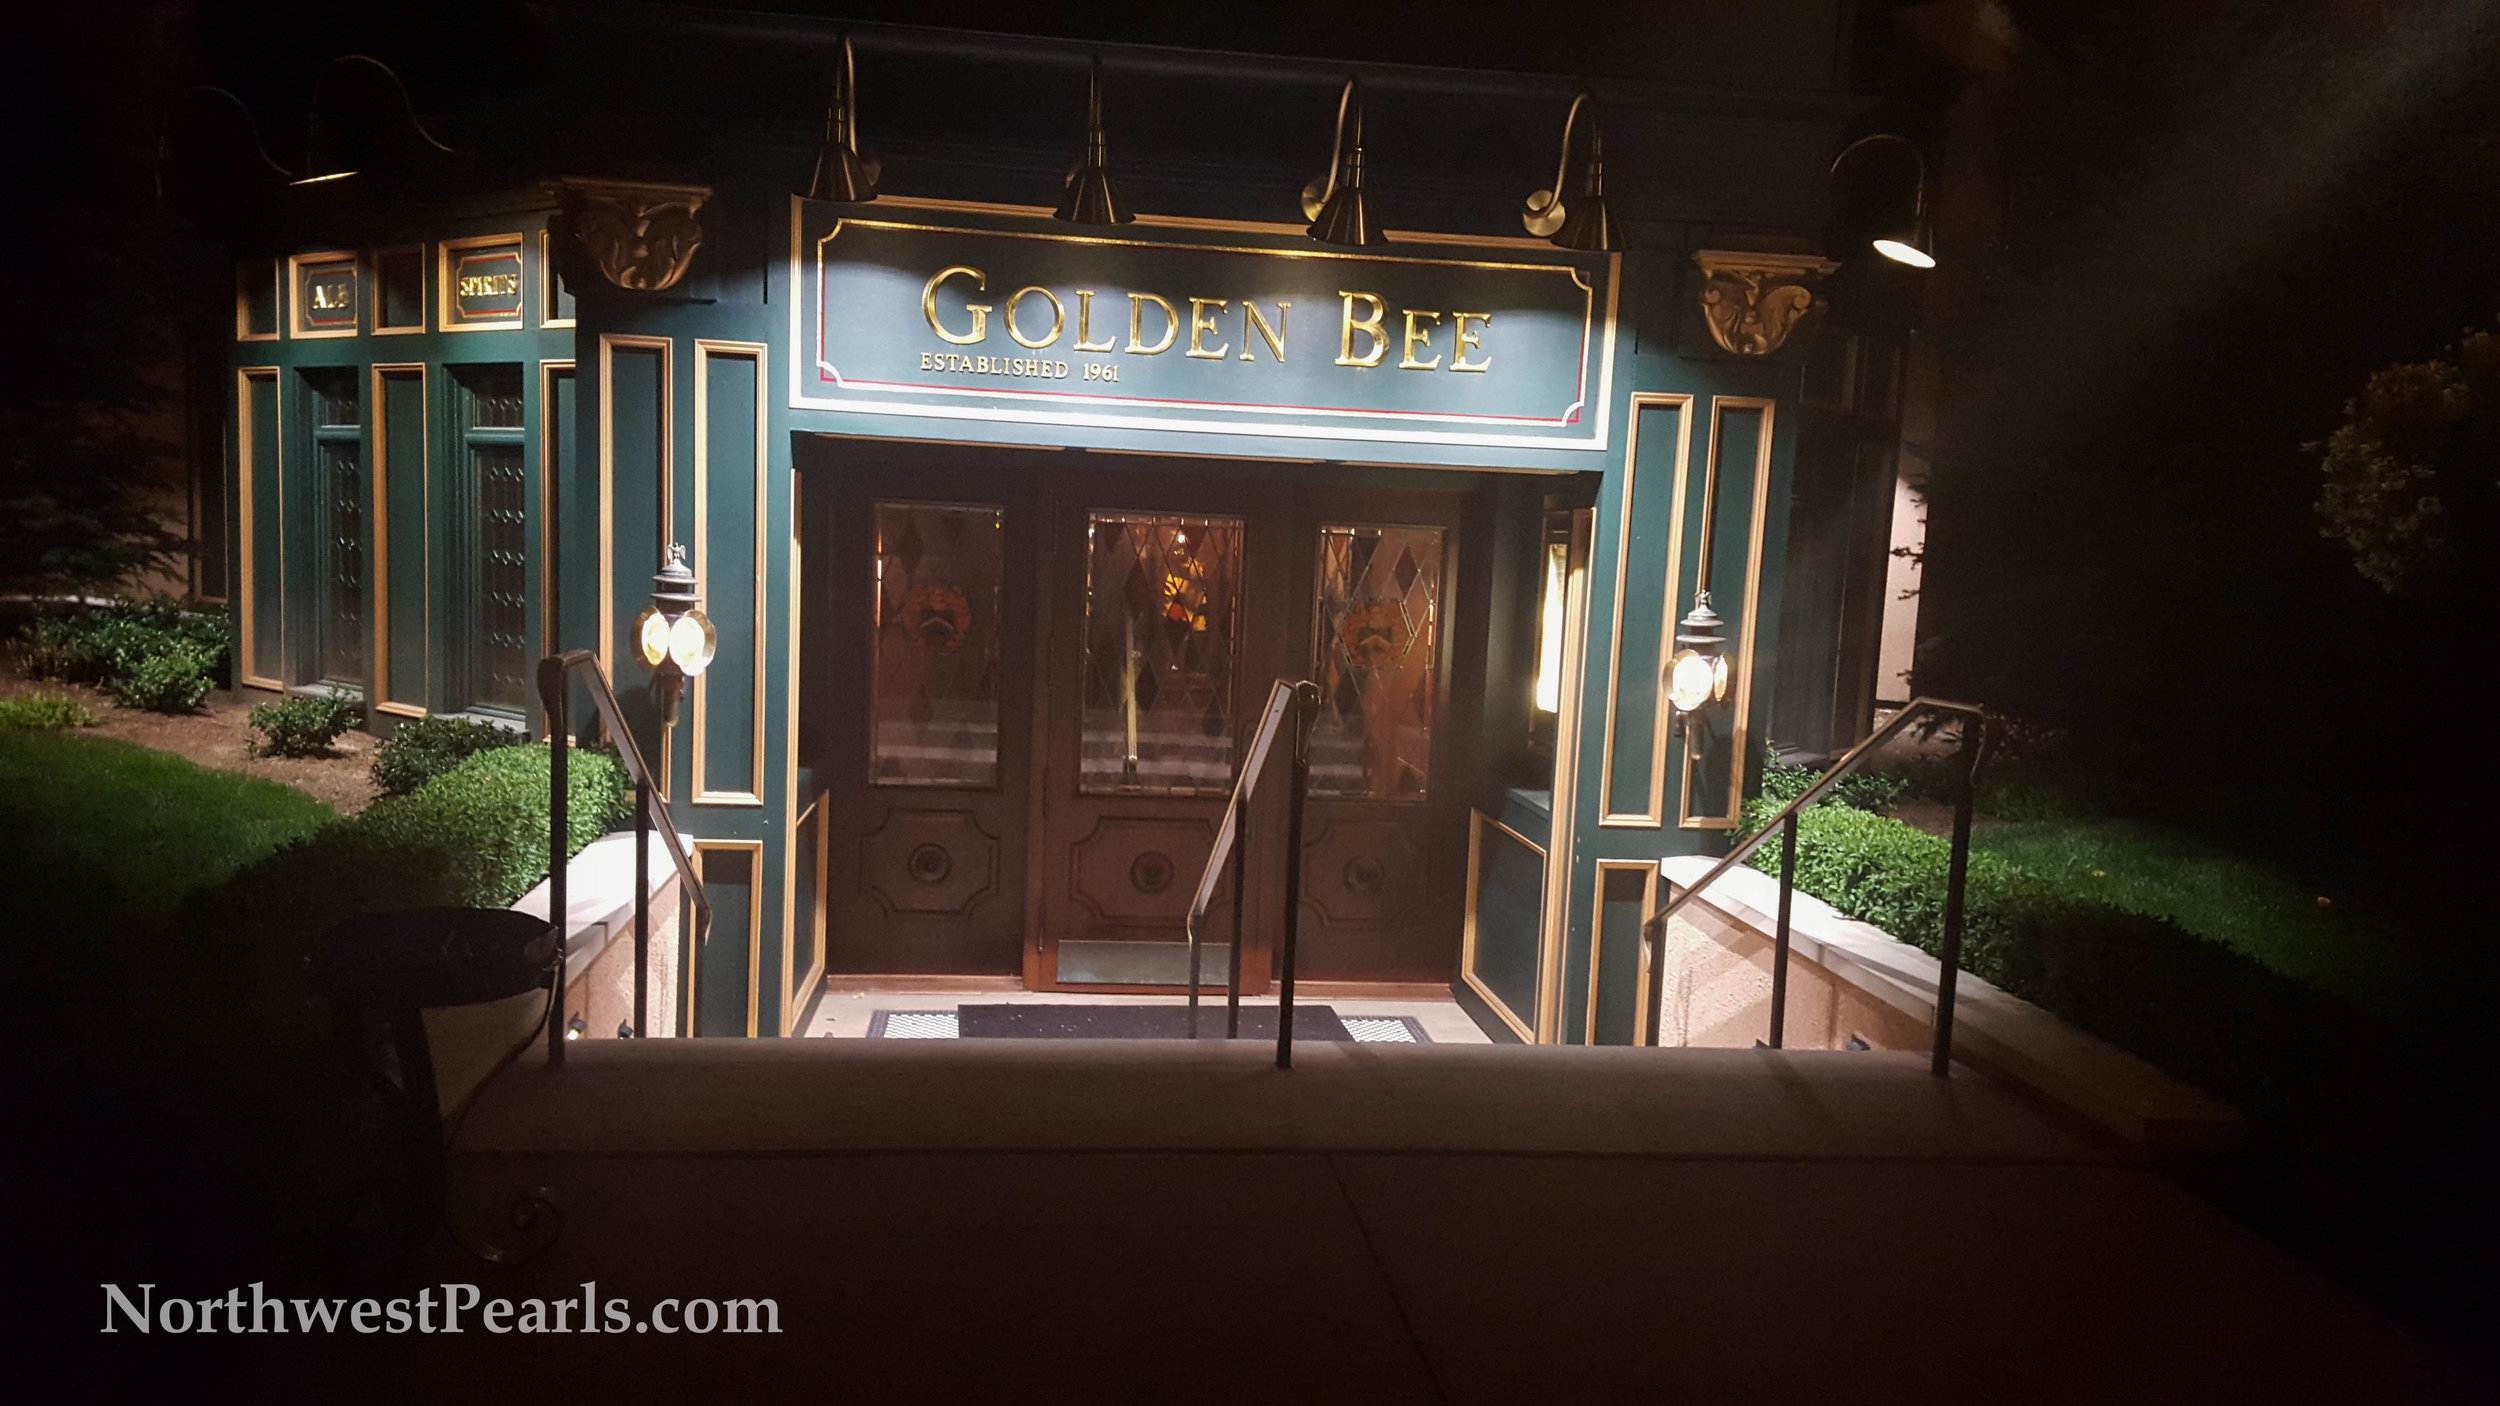 Northwest Pearls: The Golden Bee